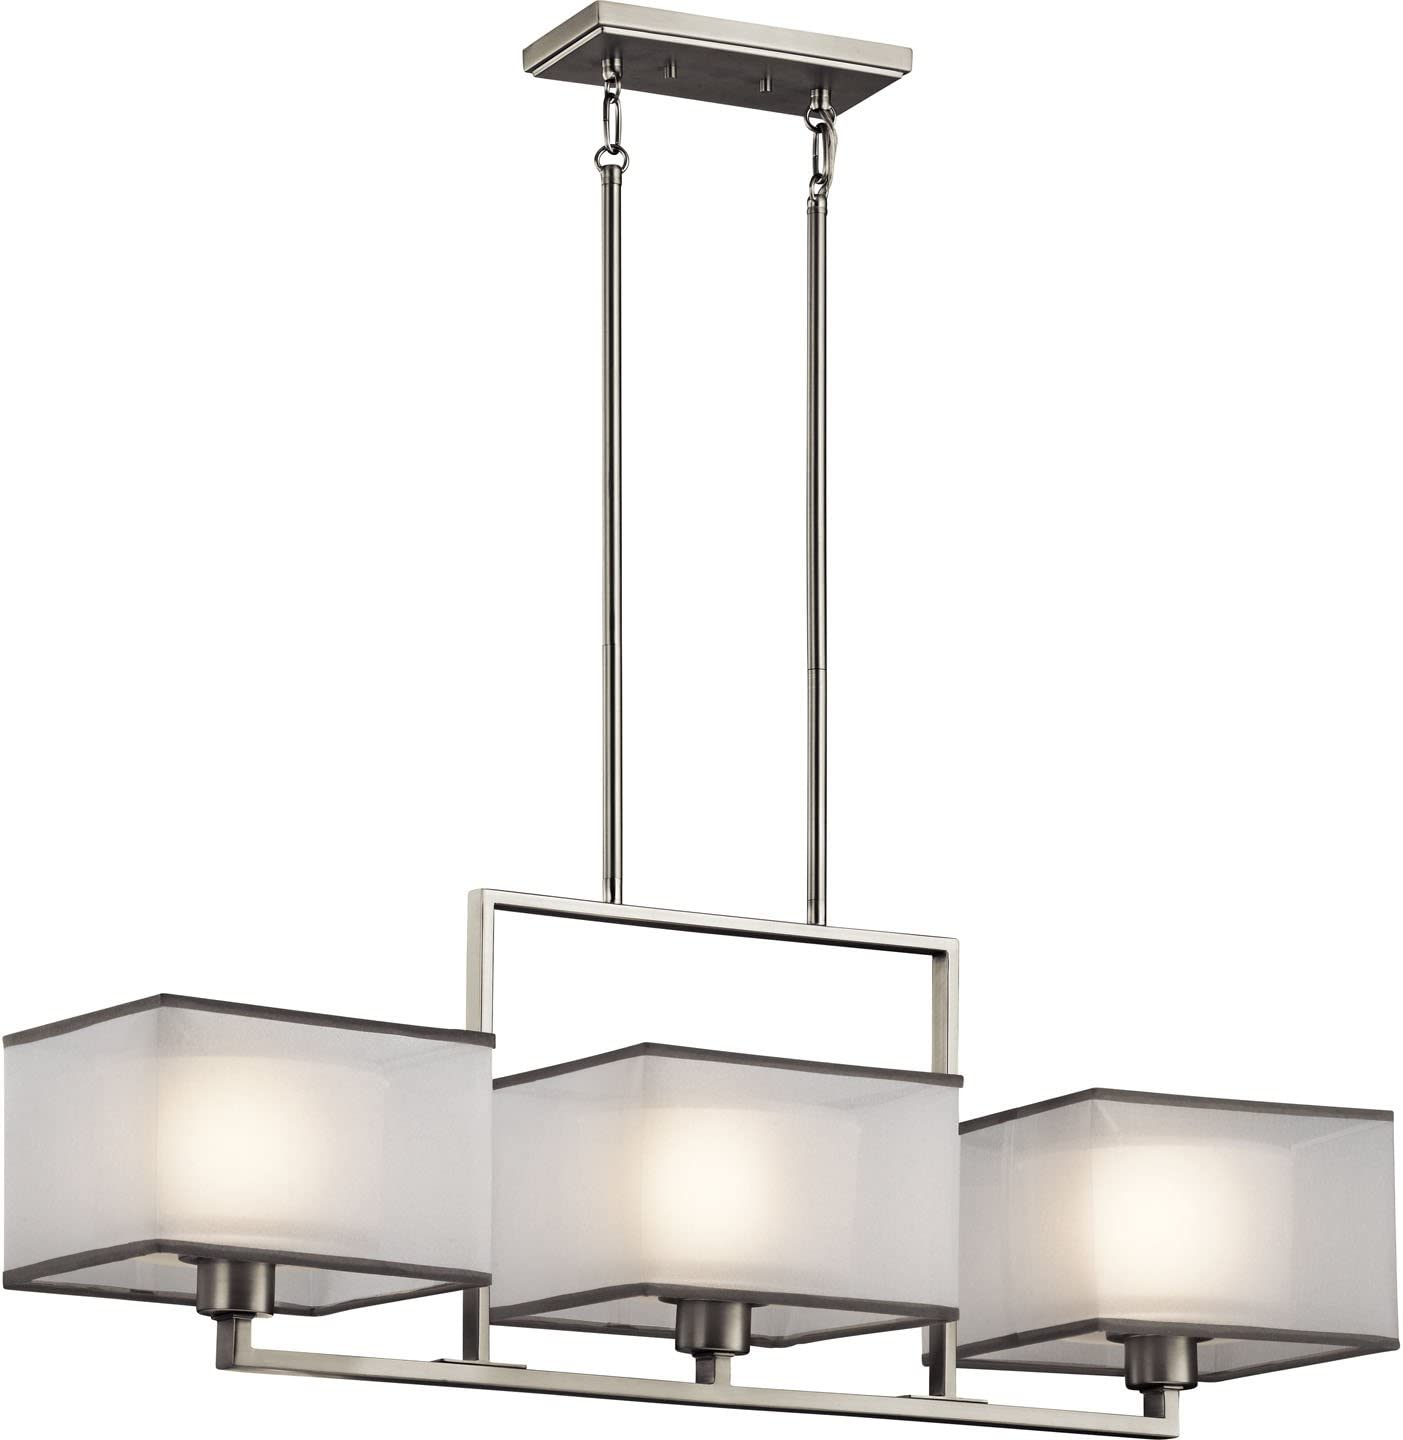 Kichler 43437NI Kailey Linear Chandelier 3-Light, Brushed Nickel